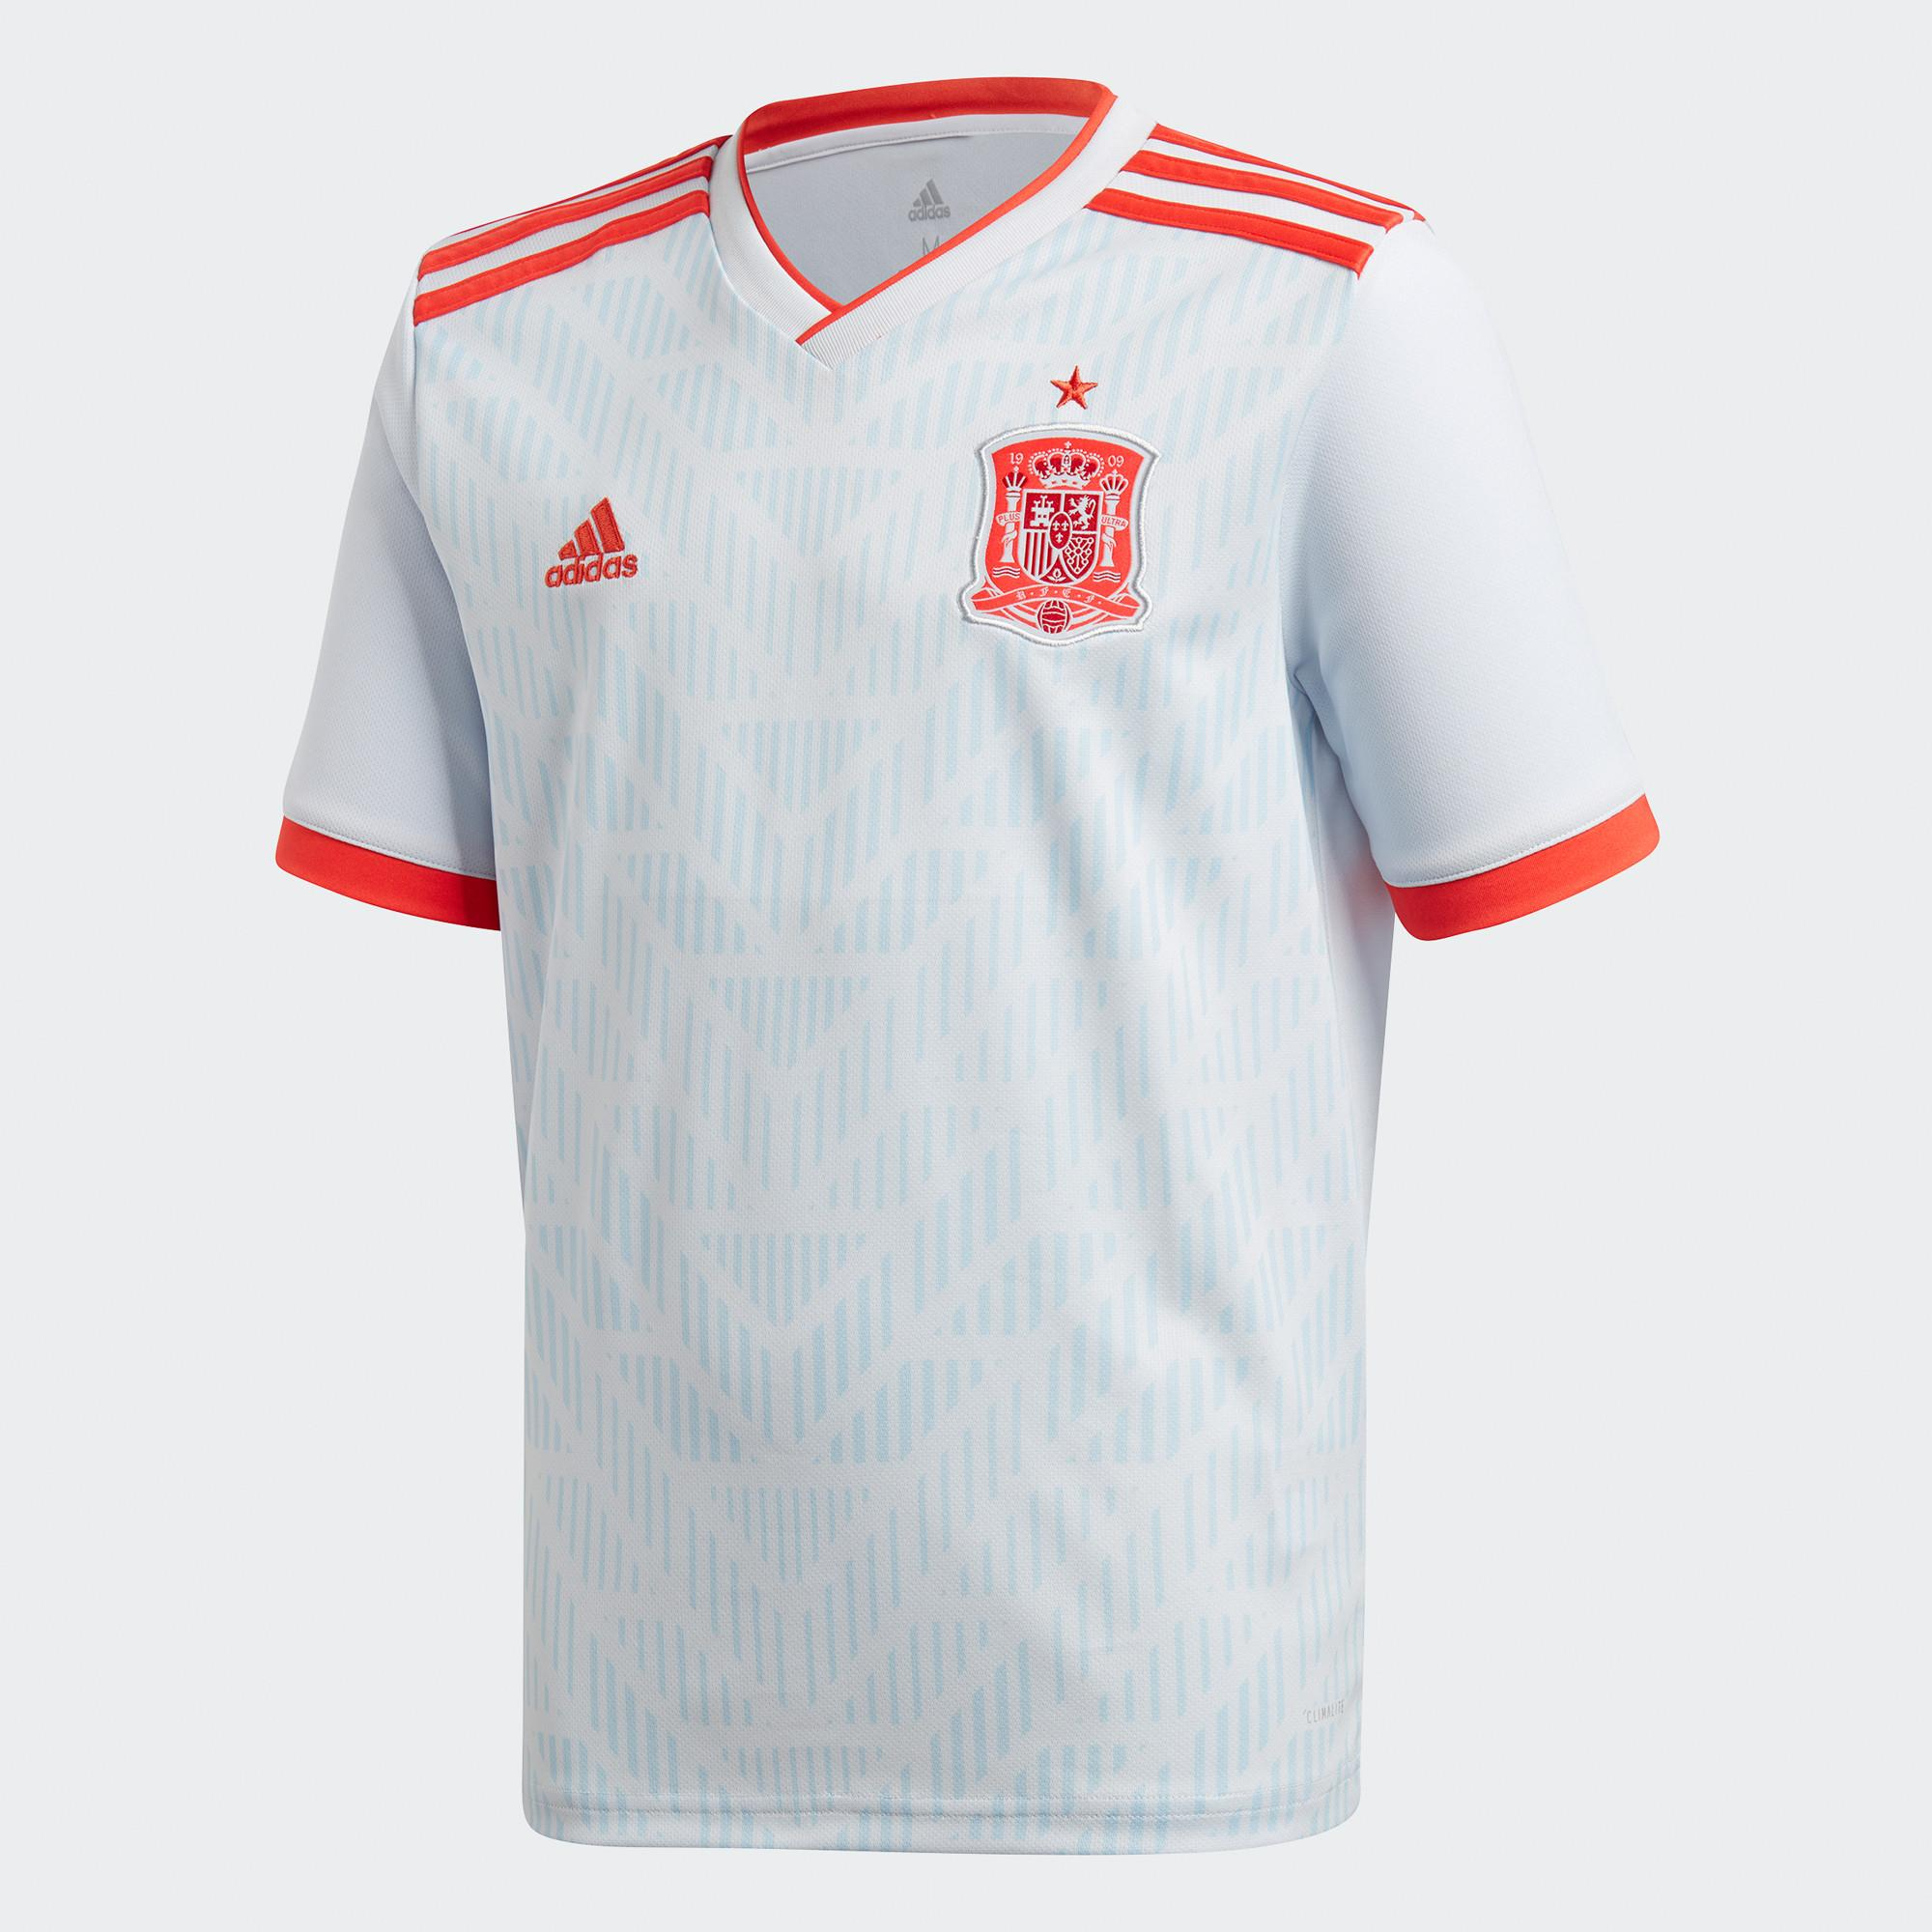 JERSEY BOLA SPANYOL AWAY OFFICIAL WORLD CUP PIALA DUNIA 2018 JERSEY SPAIN